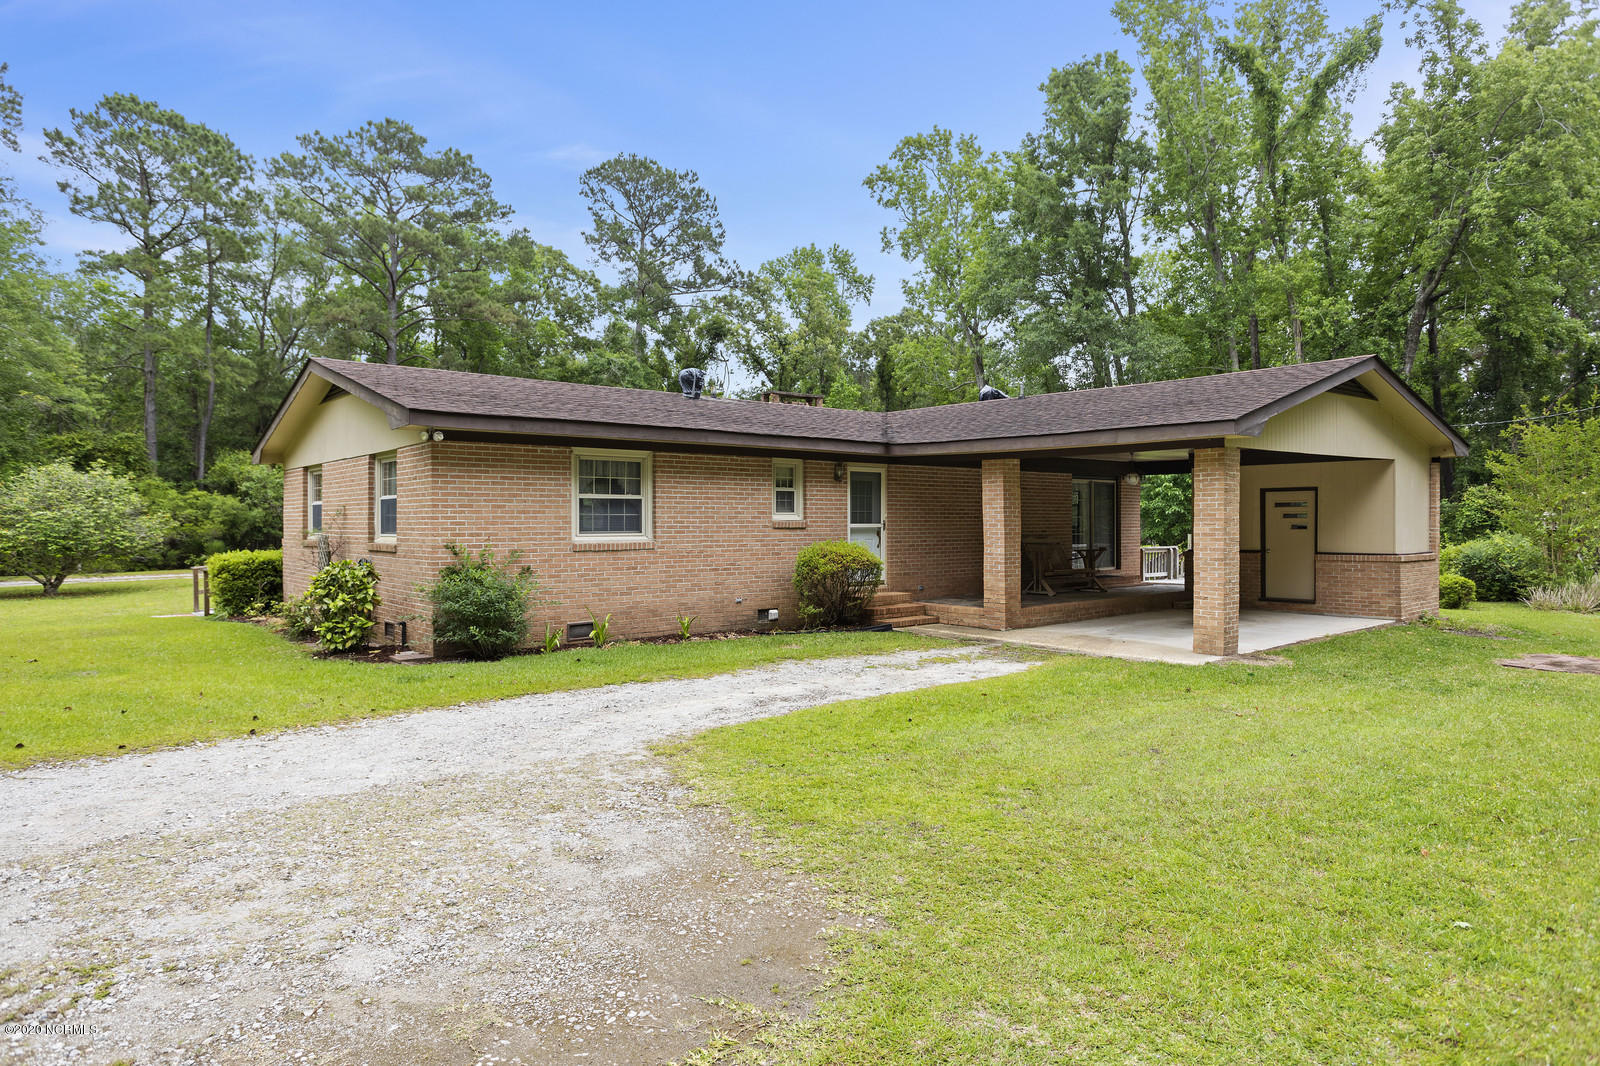 149 Saint Marys Drive, Shallotte, North Carolina 28470, 3 Bedrooms Bedrooms, 7 Rooms Rooms,1 BathroomBathrooms,Single family residence,For sale,Saint Marys,100218828